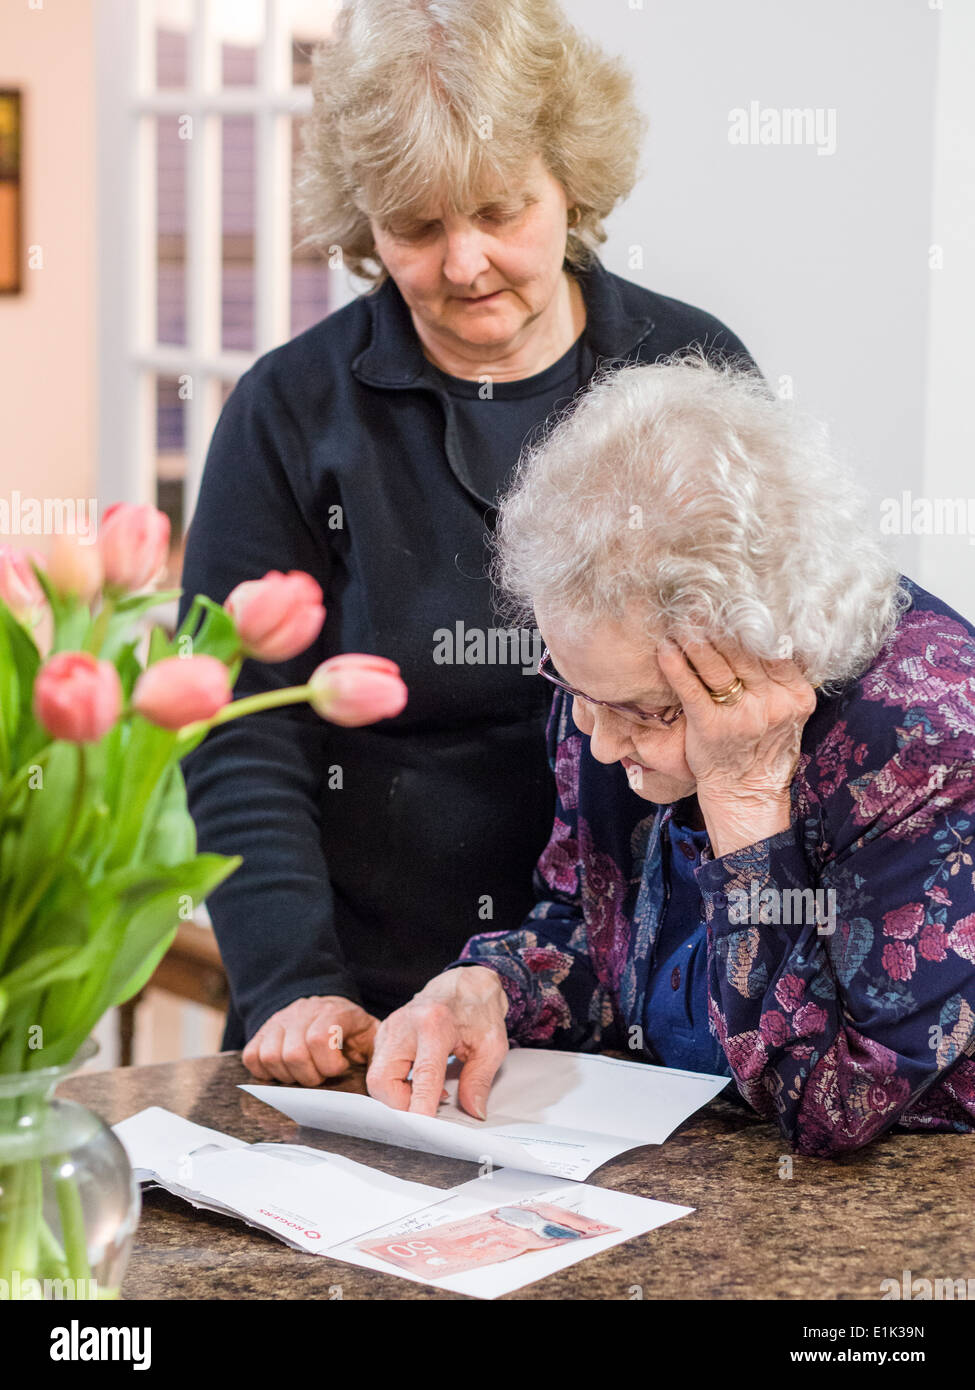 Reading the details of a Letter. A senior woman reads a letter, one hand following the text while the other supports Stock Photo